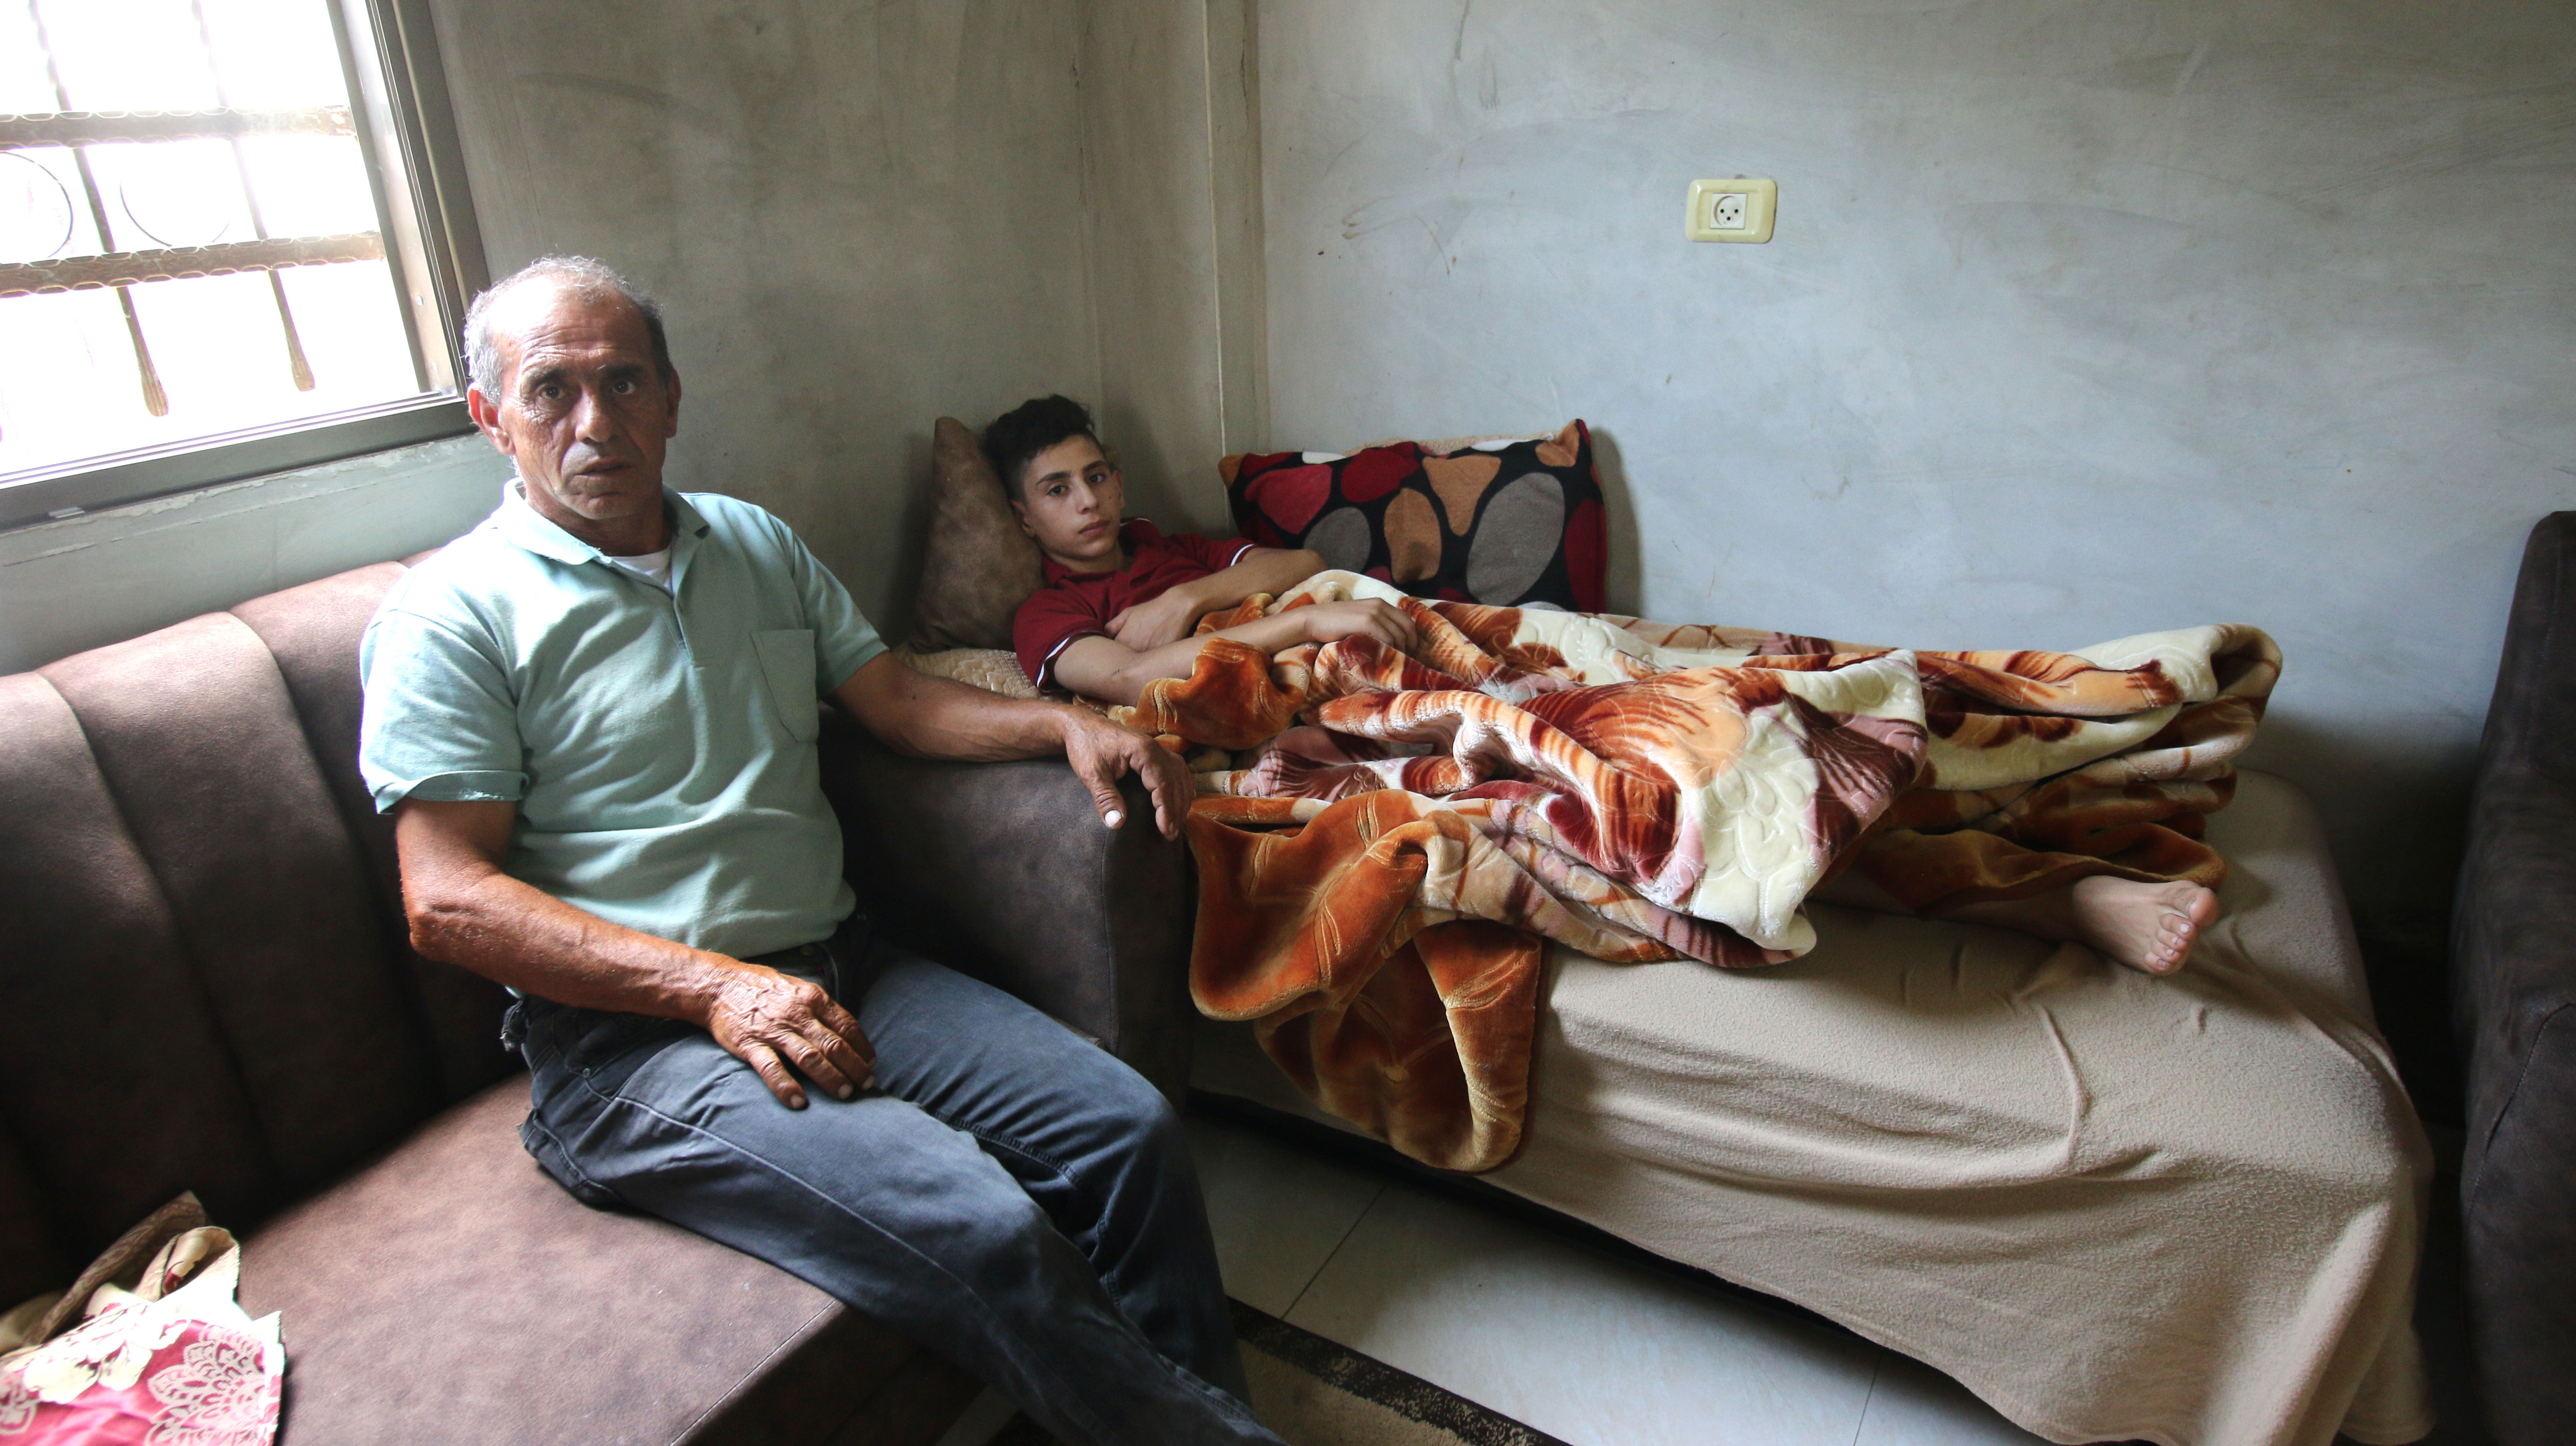 Tareq Z., 15, remains unable to walk after he was attacked by settlers in Homesh south of Jenin on August 17. His father, Abdurrazaq sits next to him in their home in Silat Ad-Dhaher. (Photo credit: DCIP / Ahmad Al-Bazz)